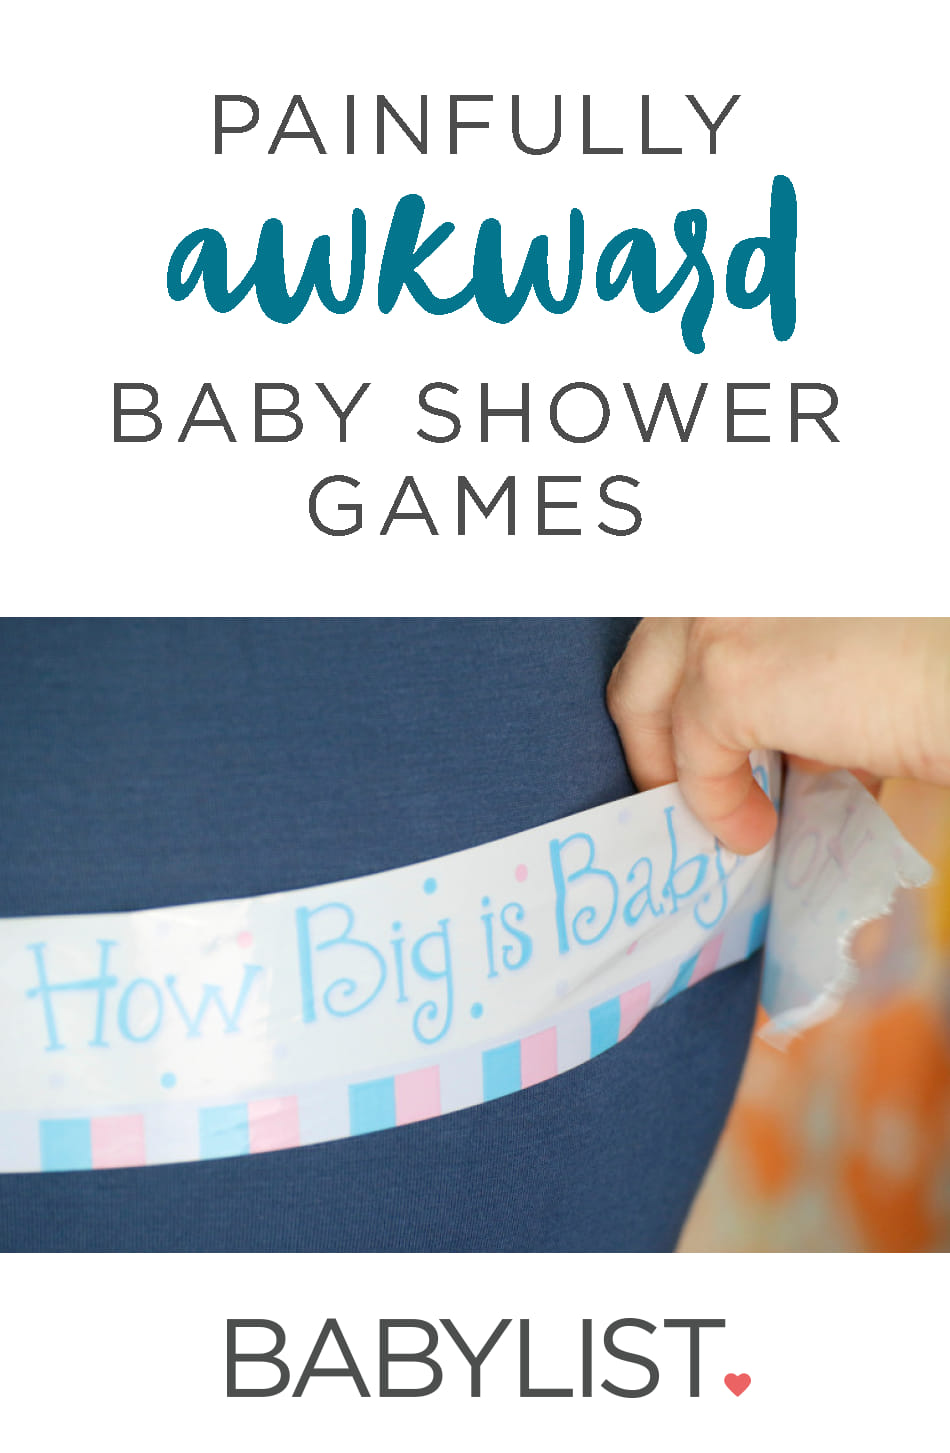 These baby shower games are the ones you most want to avoid. Despite the extreme discomfort they cause guests, they remain inexplicably popular. Take a stand and ban these unwholesome baby shower games.